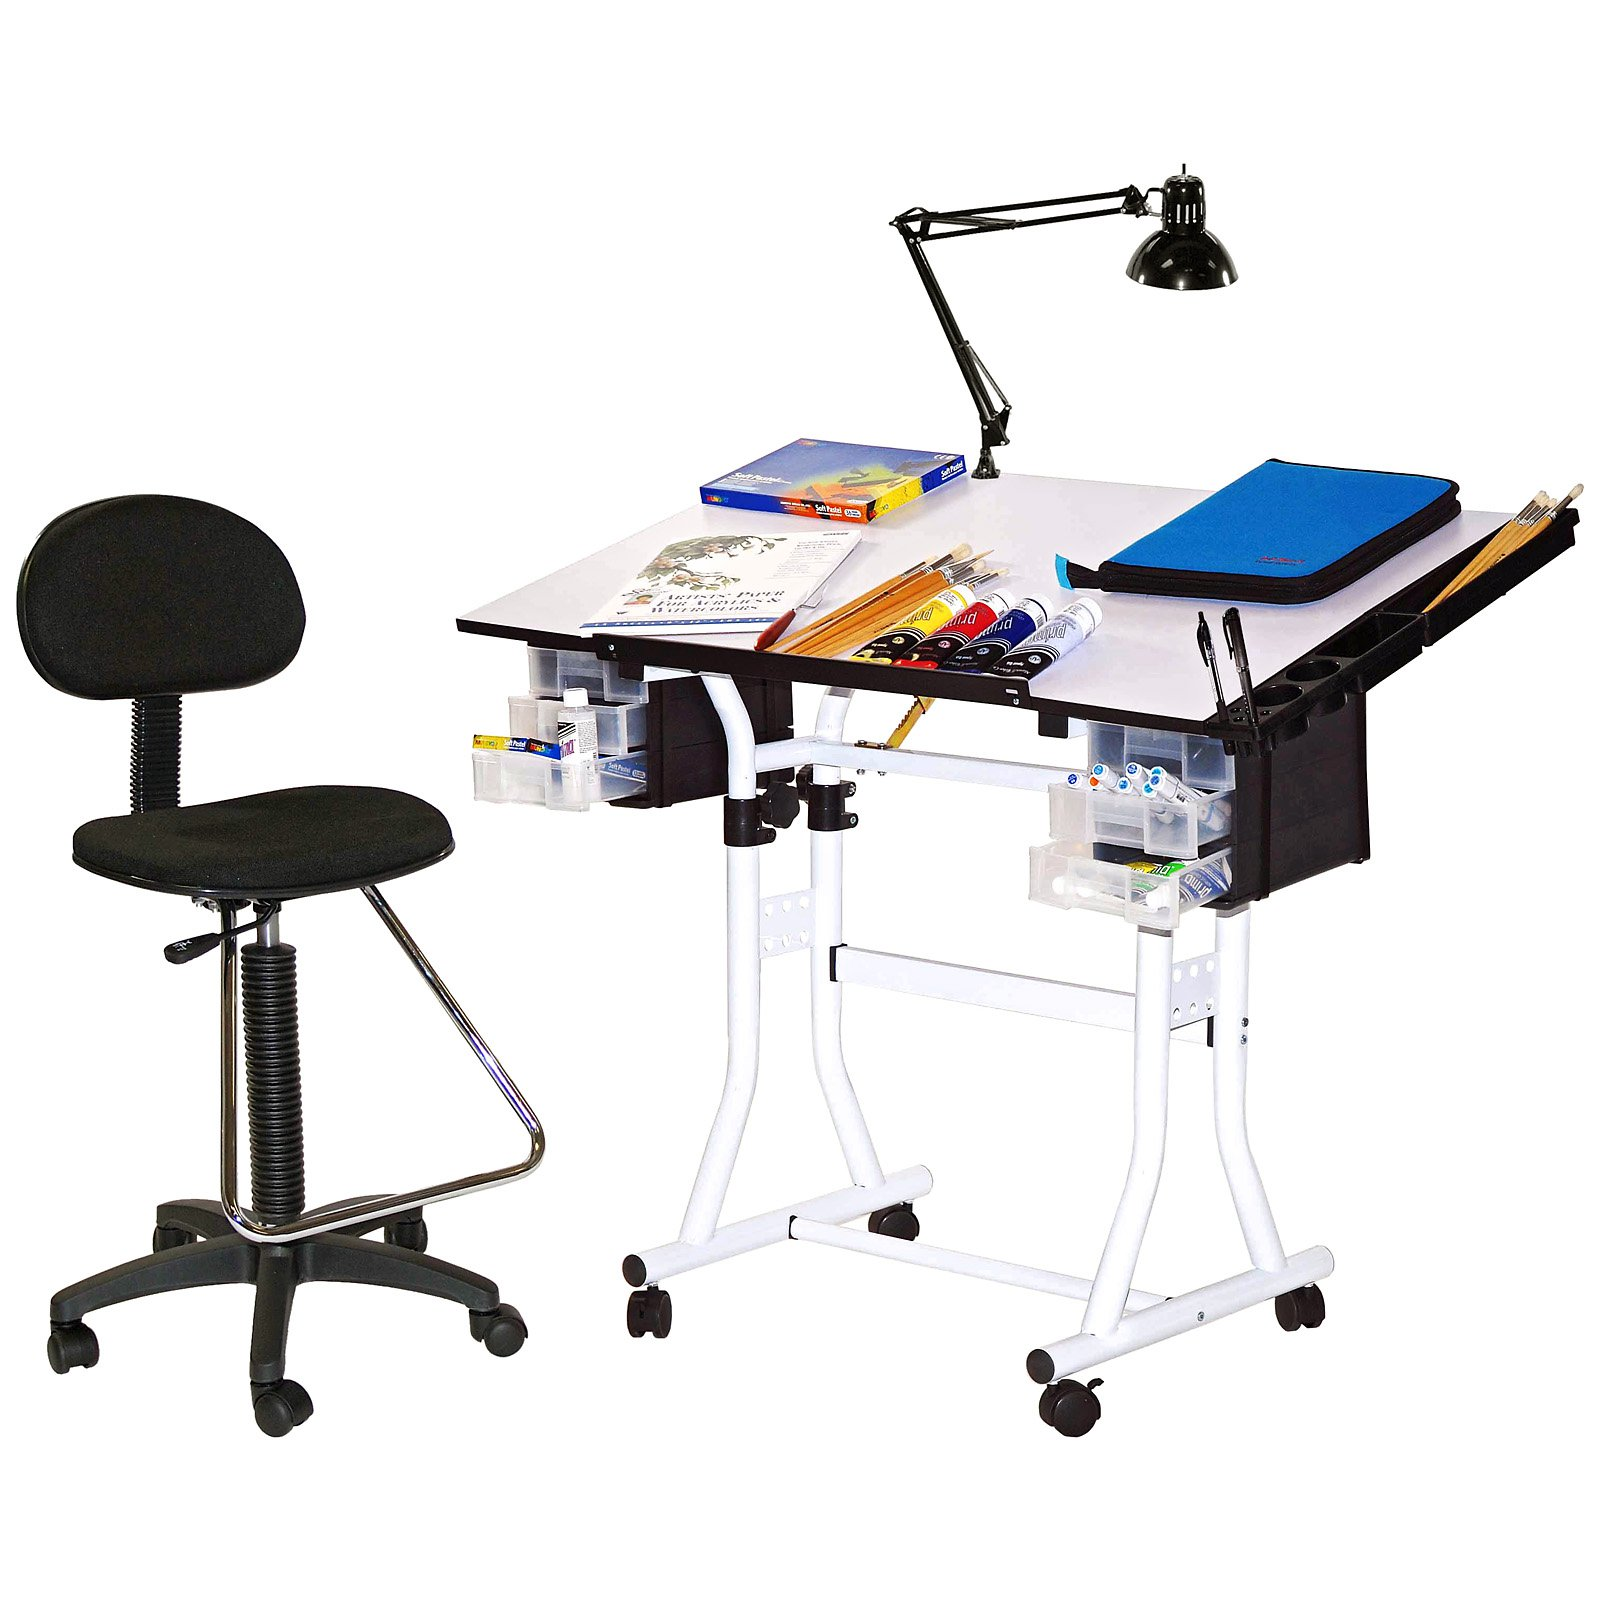 Adjustable Drawing And Drafting Table With Black Frame And Dual Wheel  Casters   Walmart.com